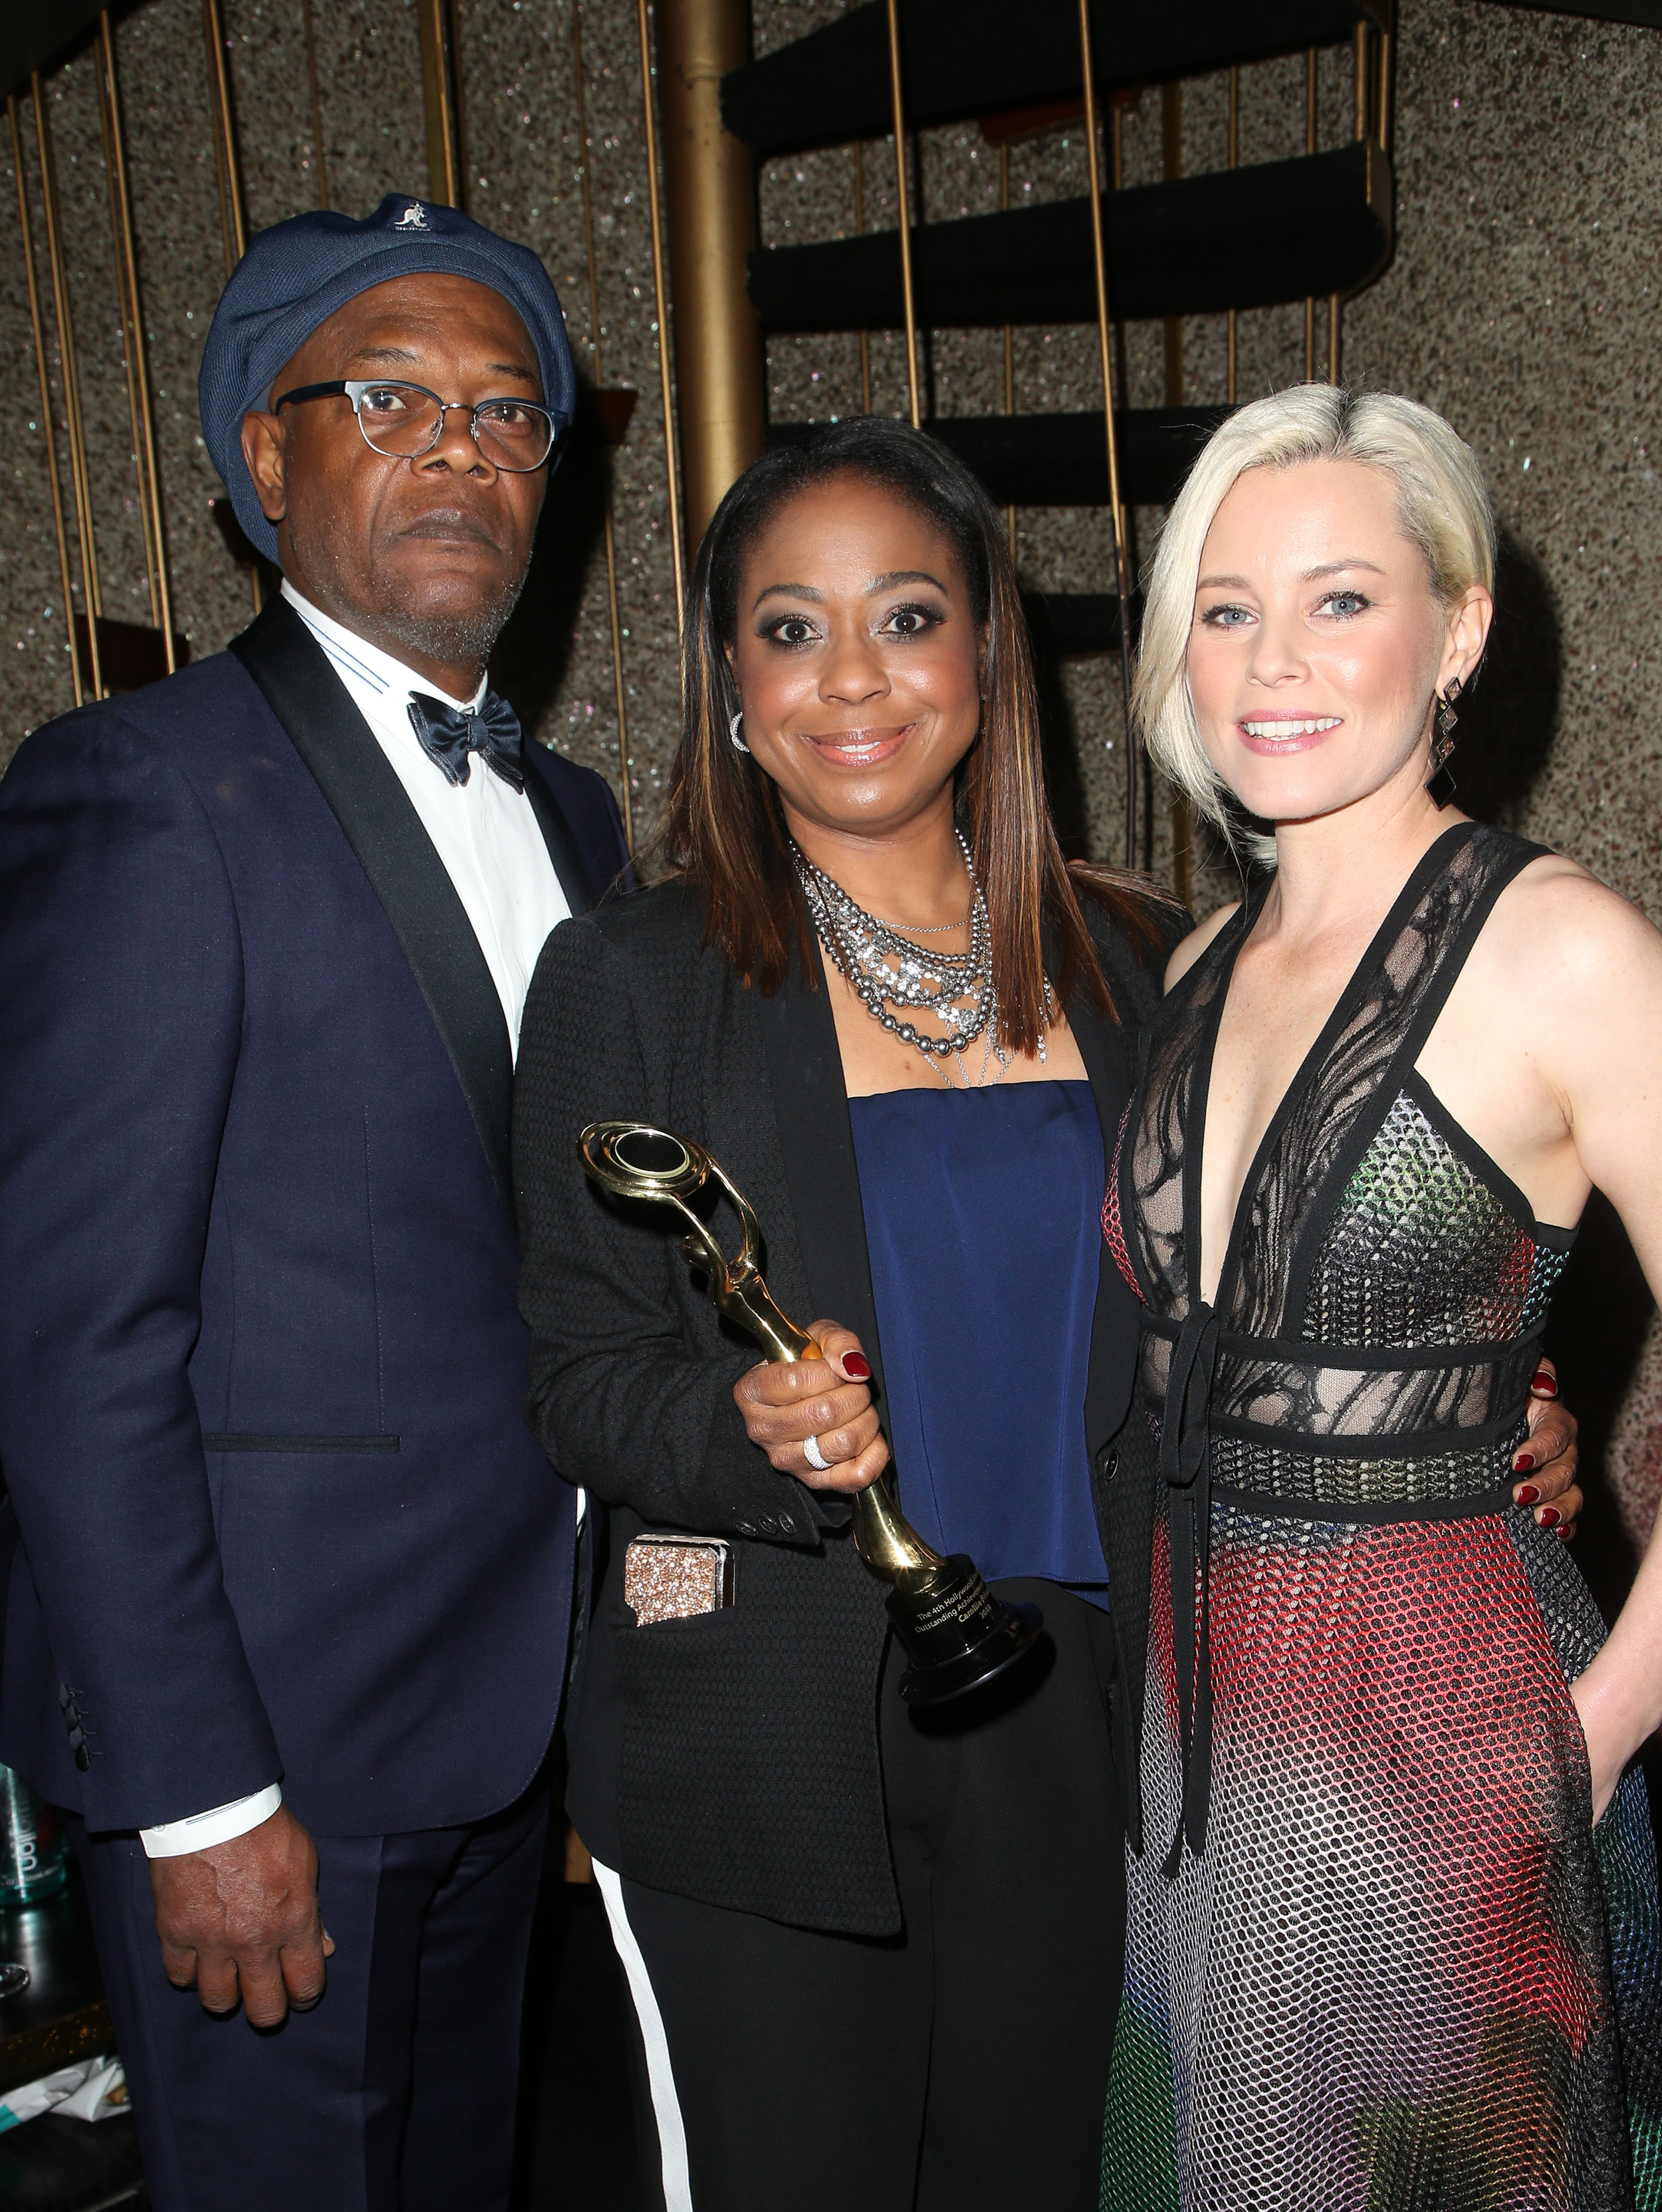 Samuel Jackson, Camille Friend and Elizabeth Banks | Feb 25, 2018, Hollywood Beauty Awards held at the Avalon